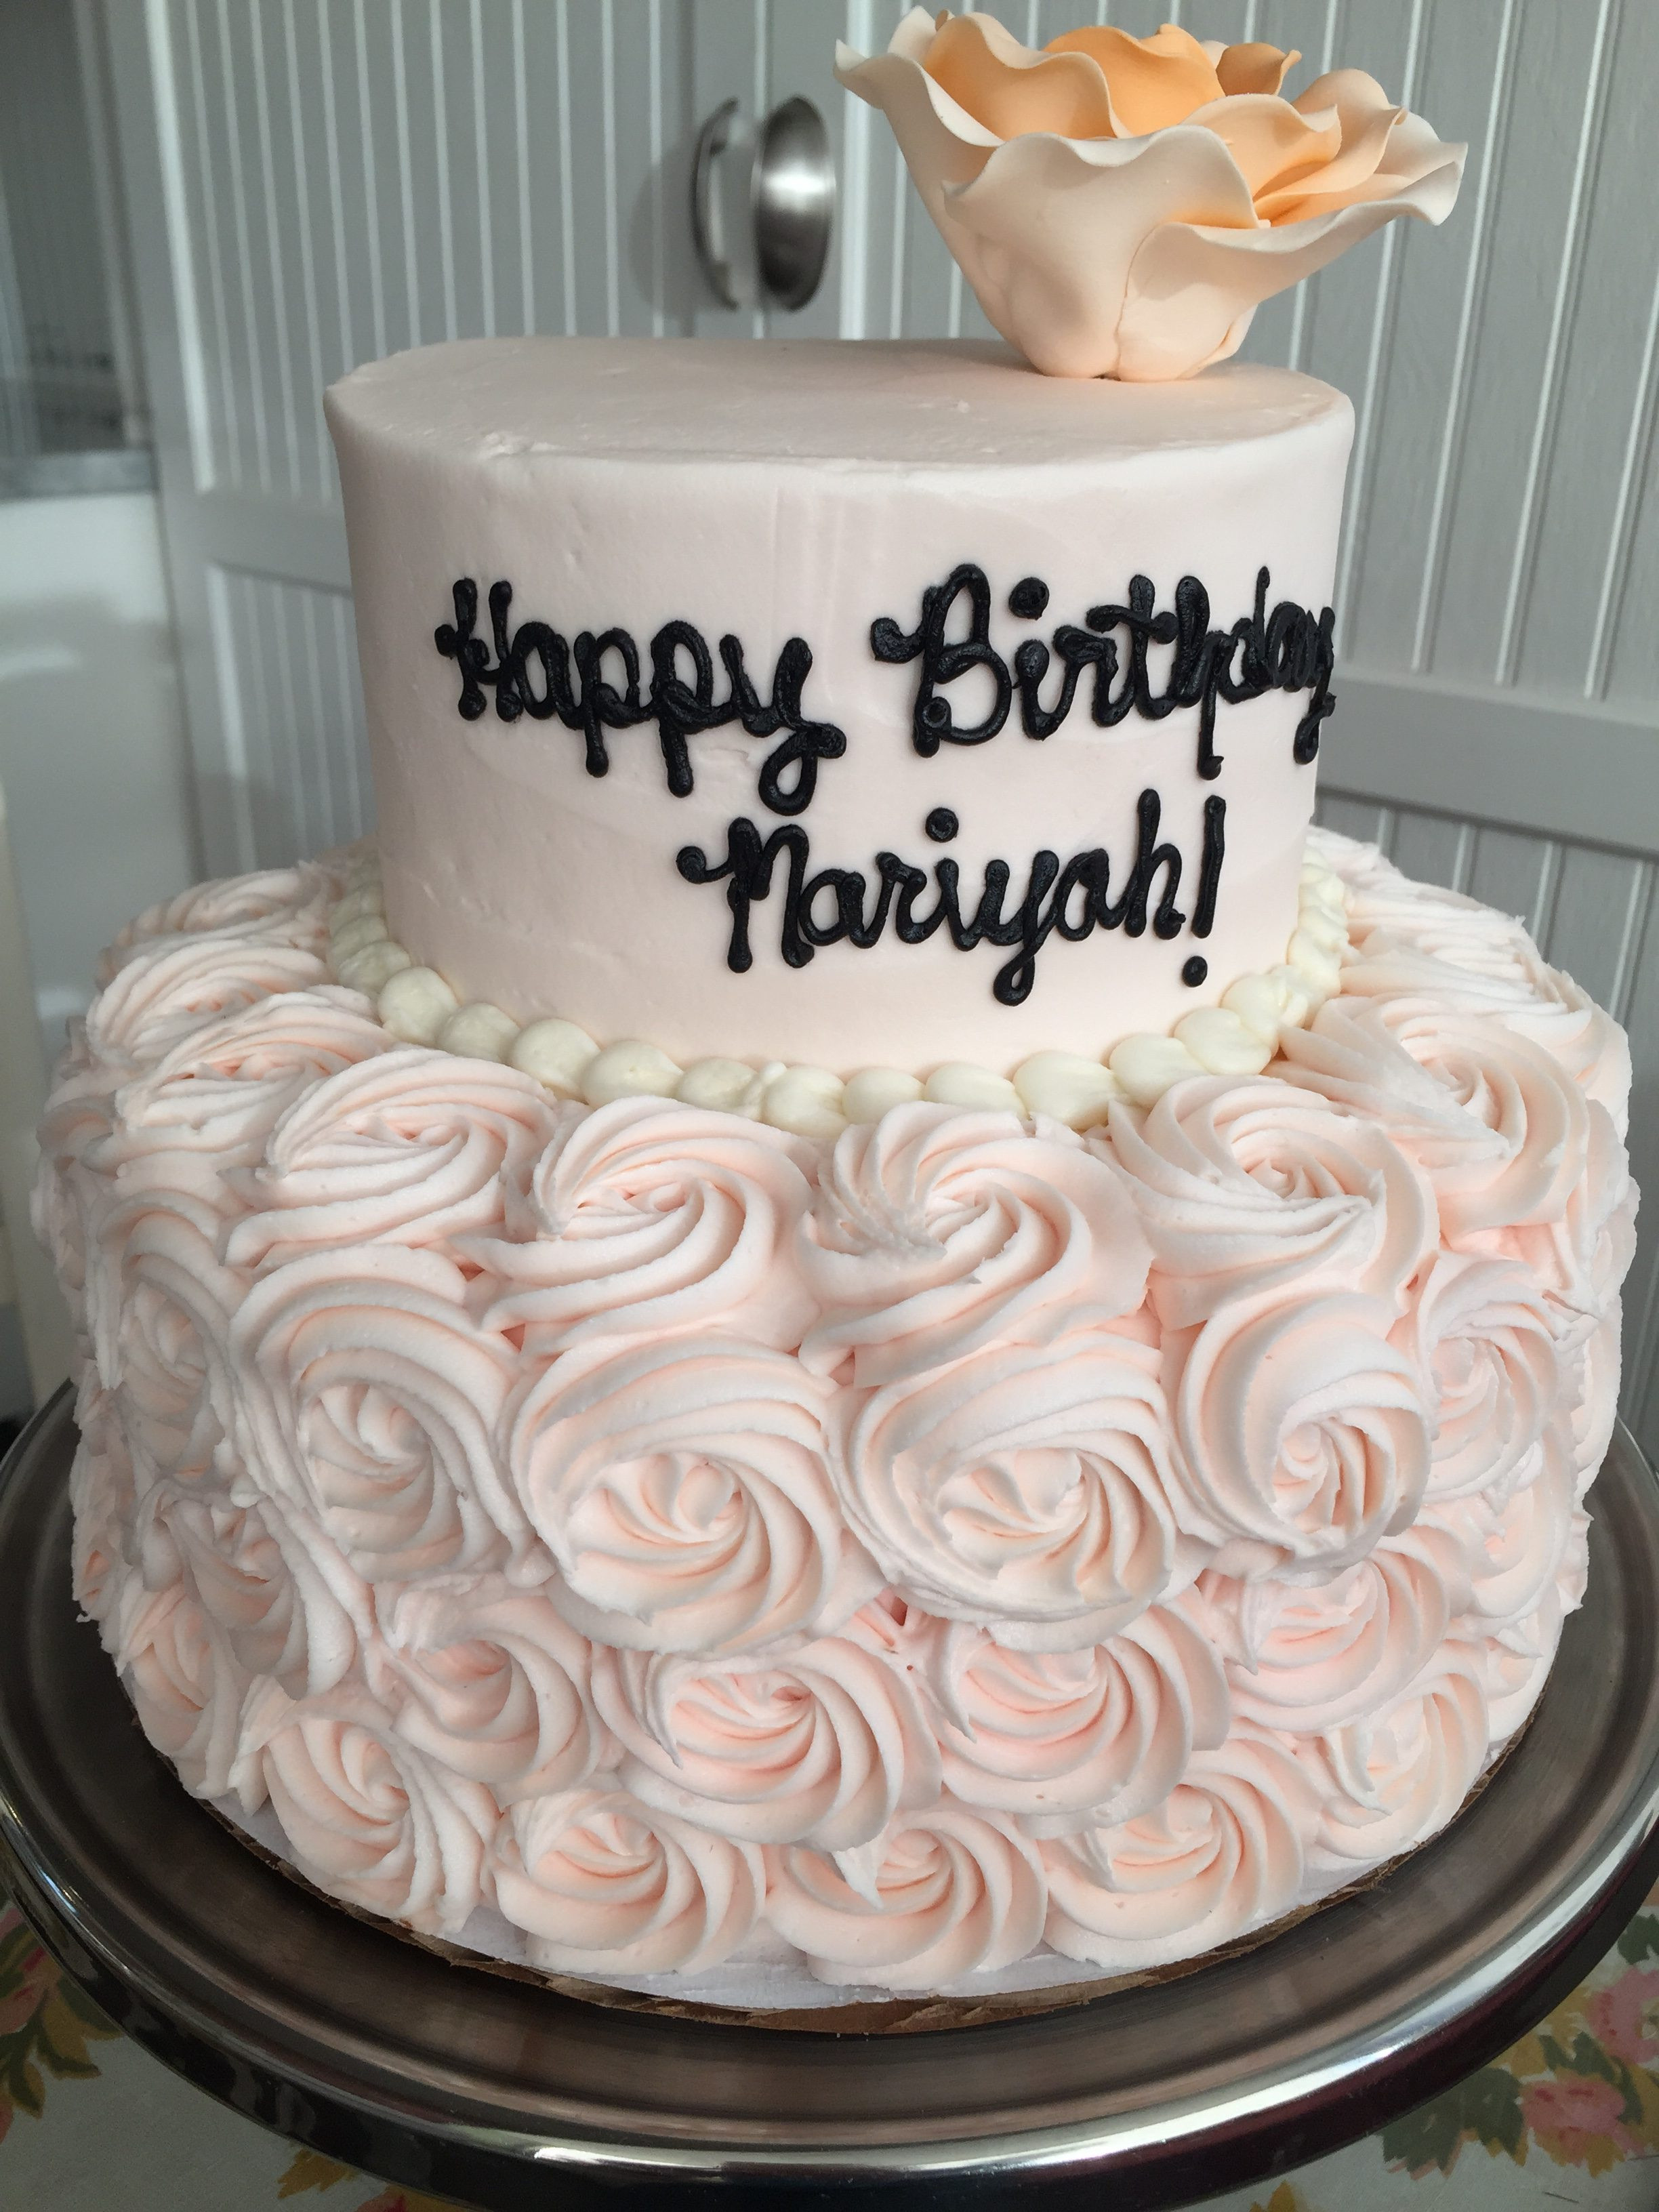 Best ideas about 2 Tier Birthday Cake . Save or Pin 2 Tier Birthday Cakes Now.